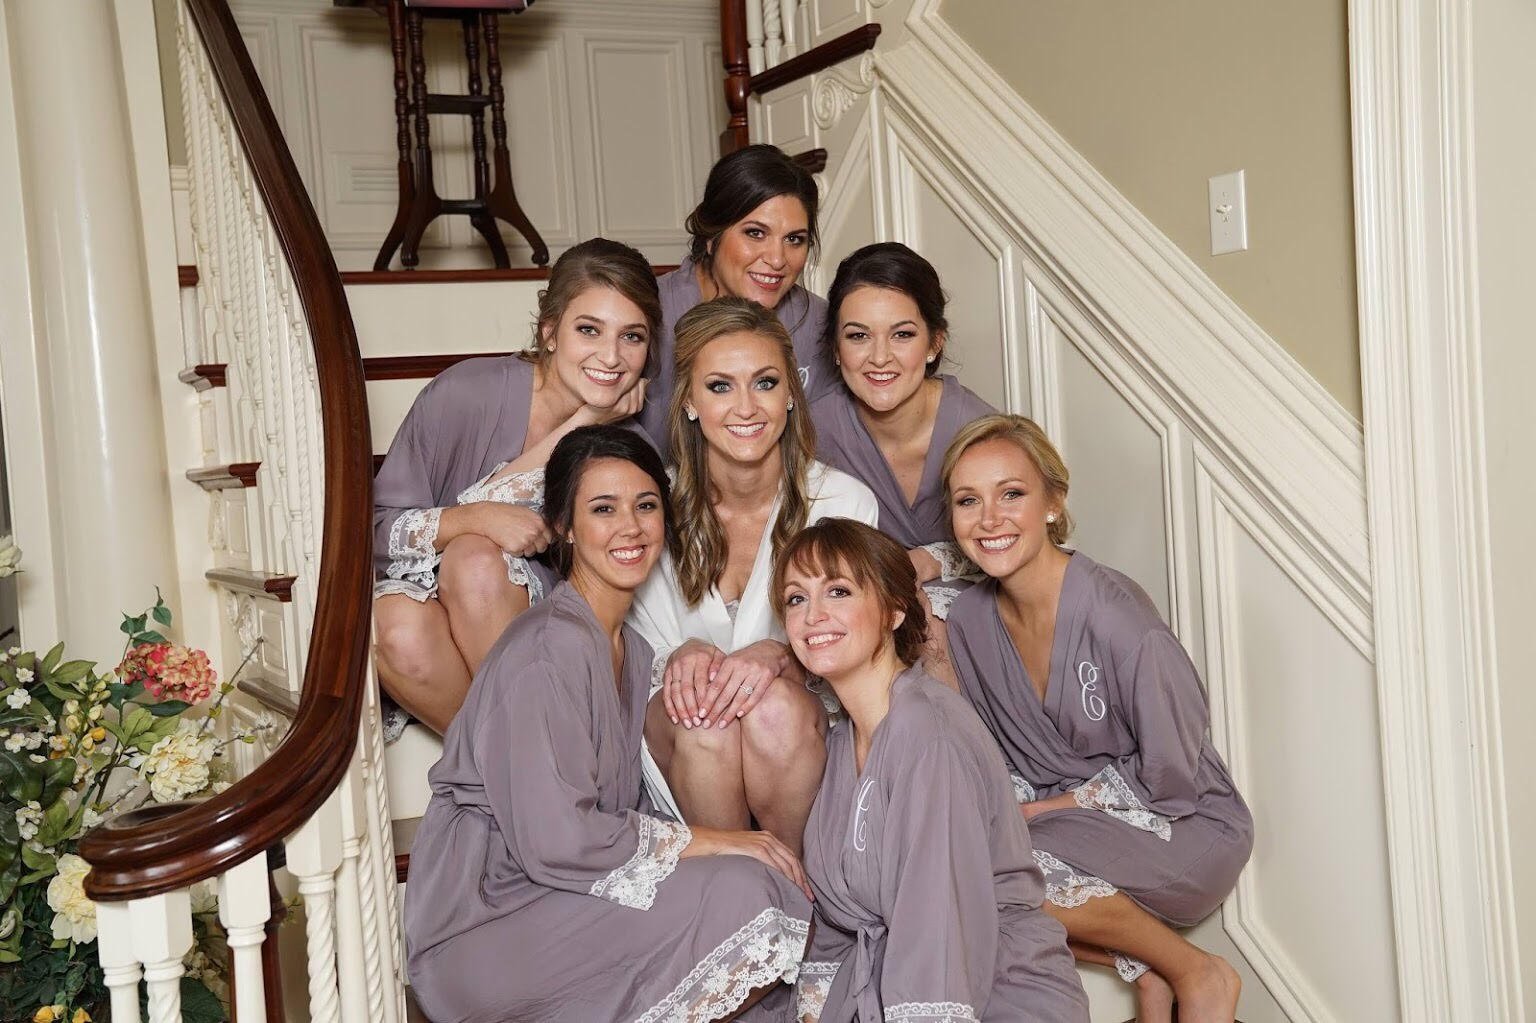 Heidi with her bridesmaids